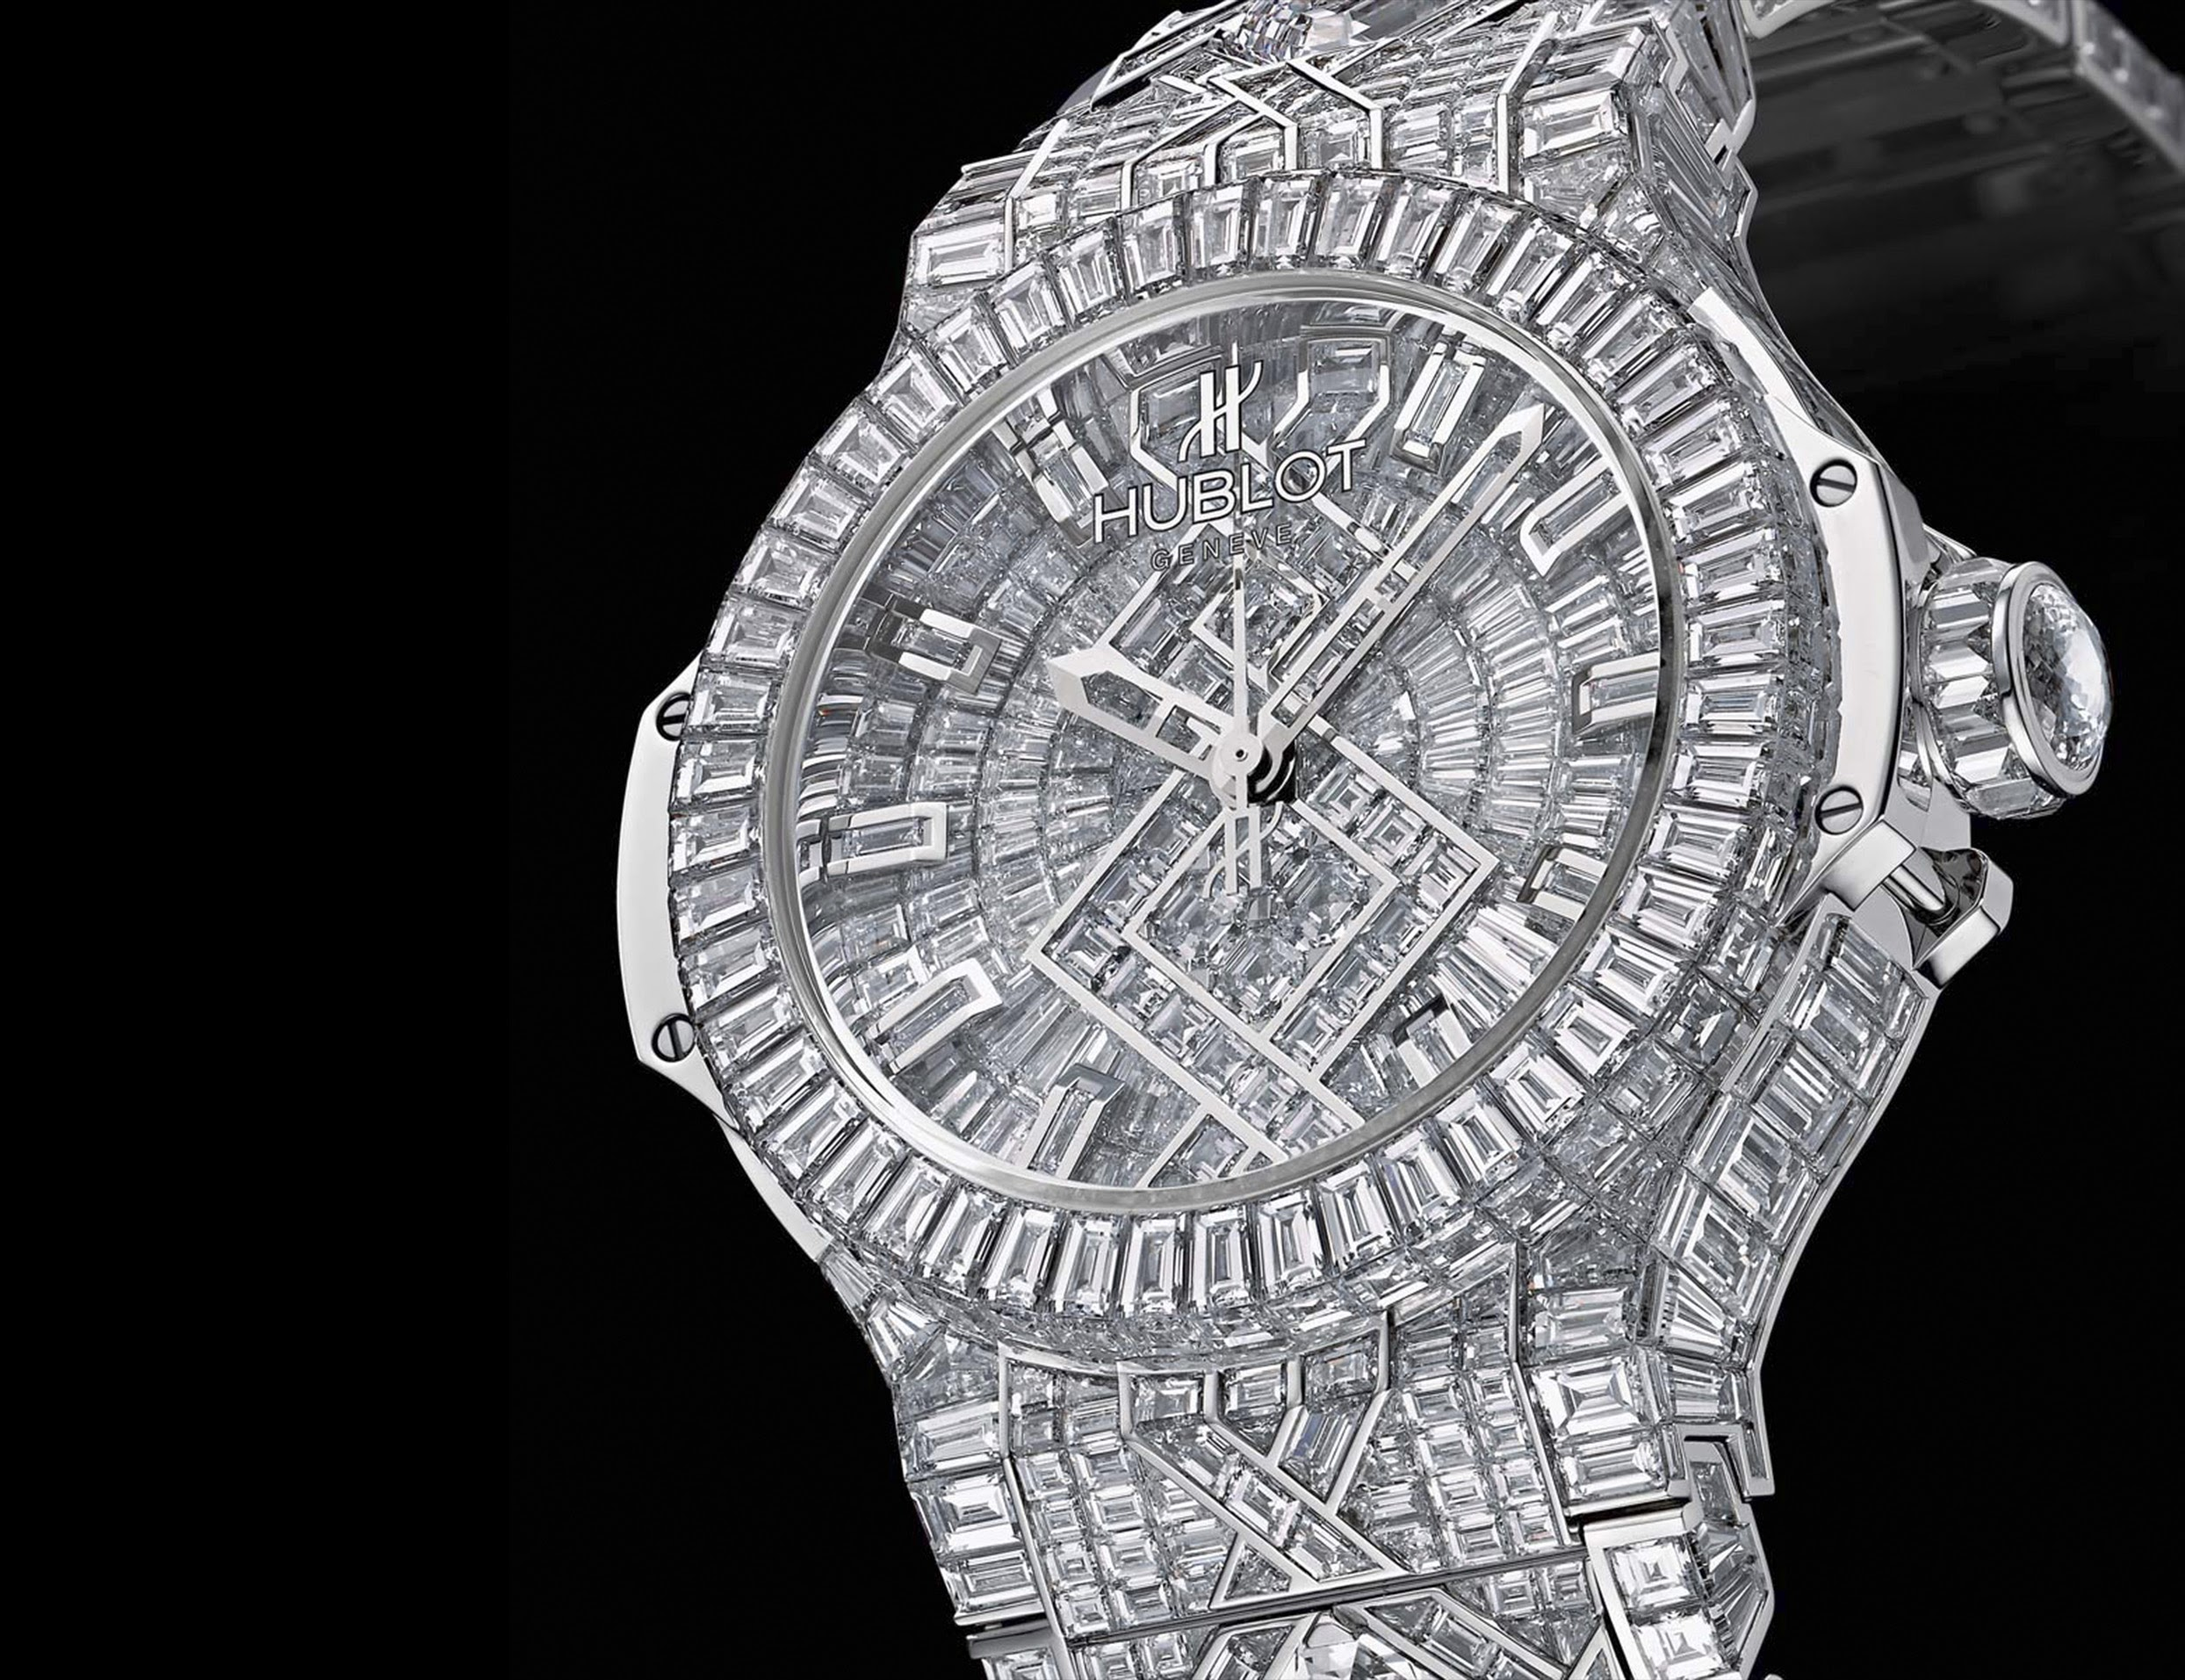 most-expensive-watches-in-the-world-2014-4-done